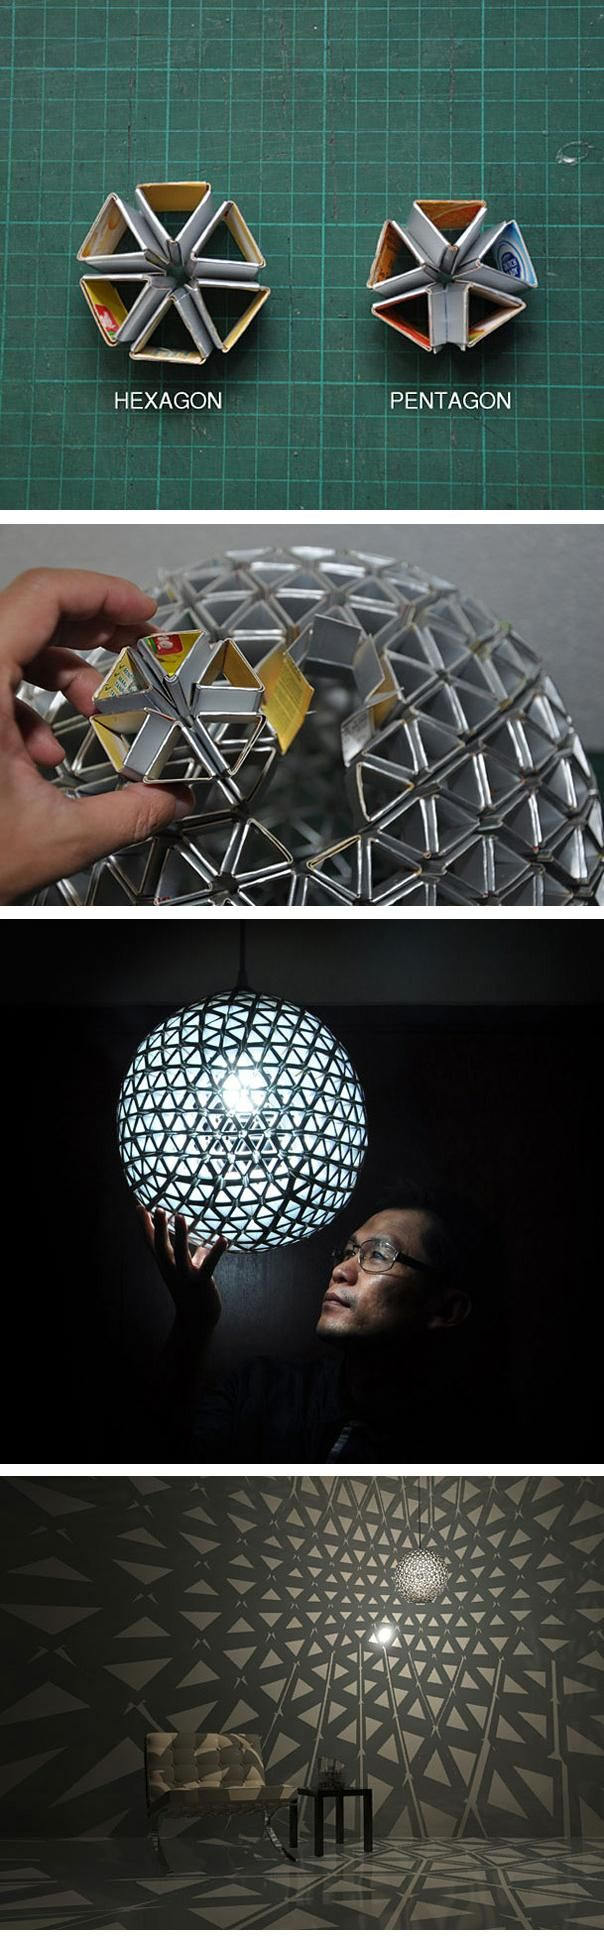 Pretty cool lamp, as long as it doesn't catch fire (the hexagons and pentagons are cardboard).